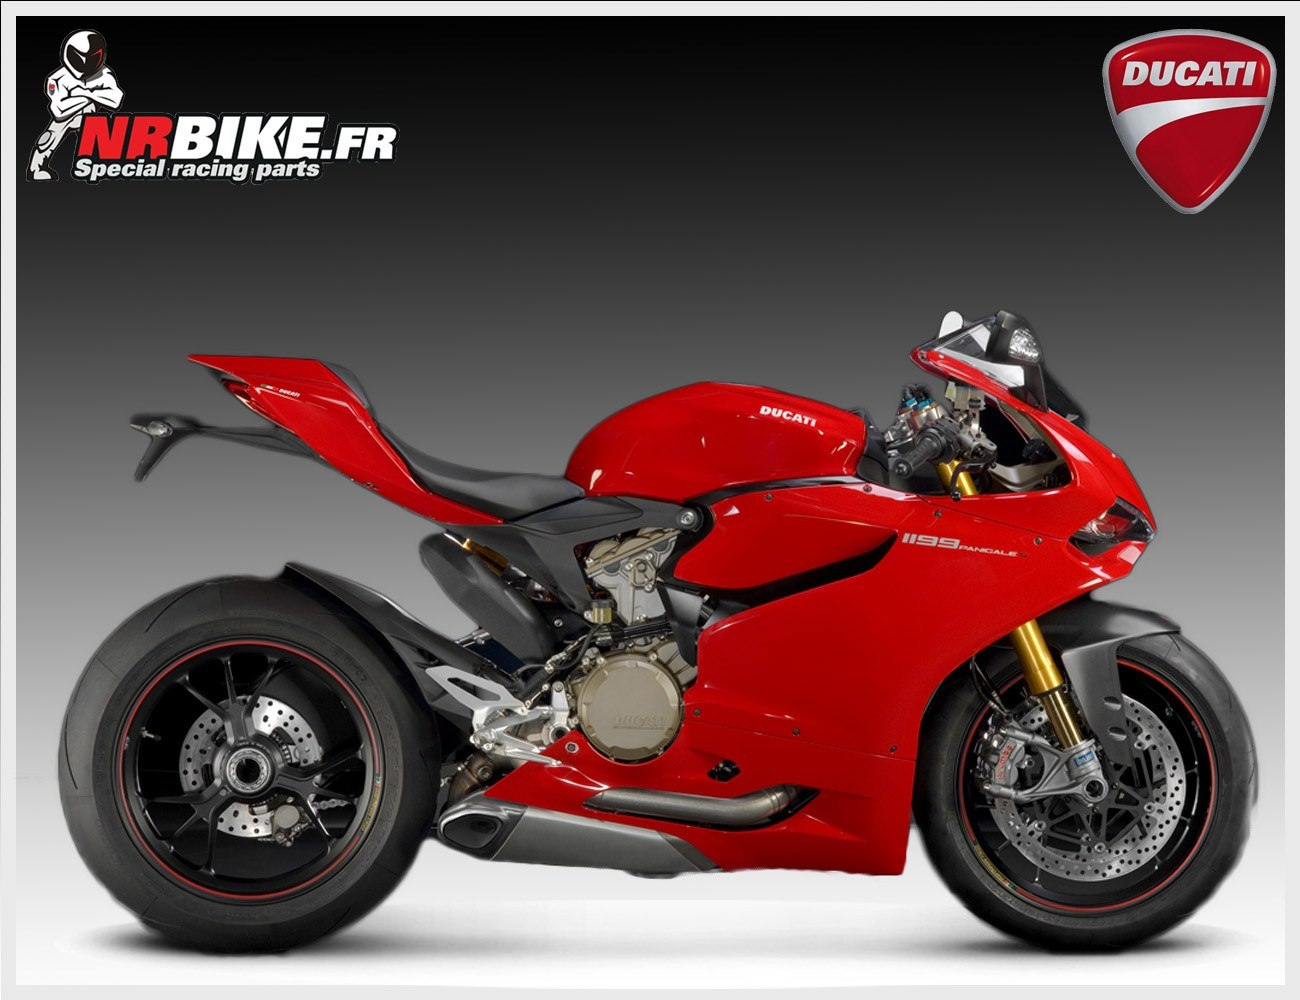 PANIGALE 1199 / S